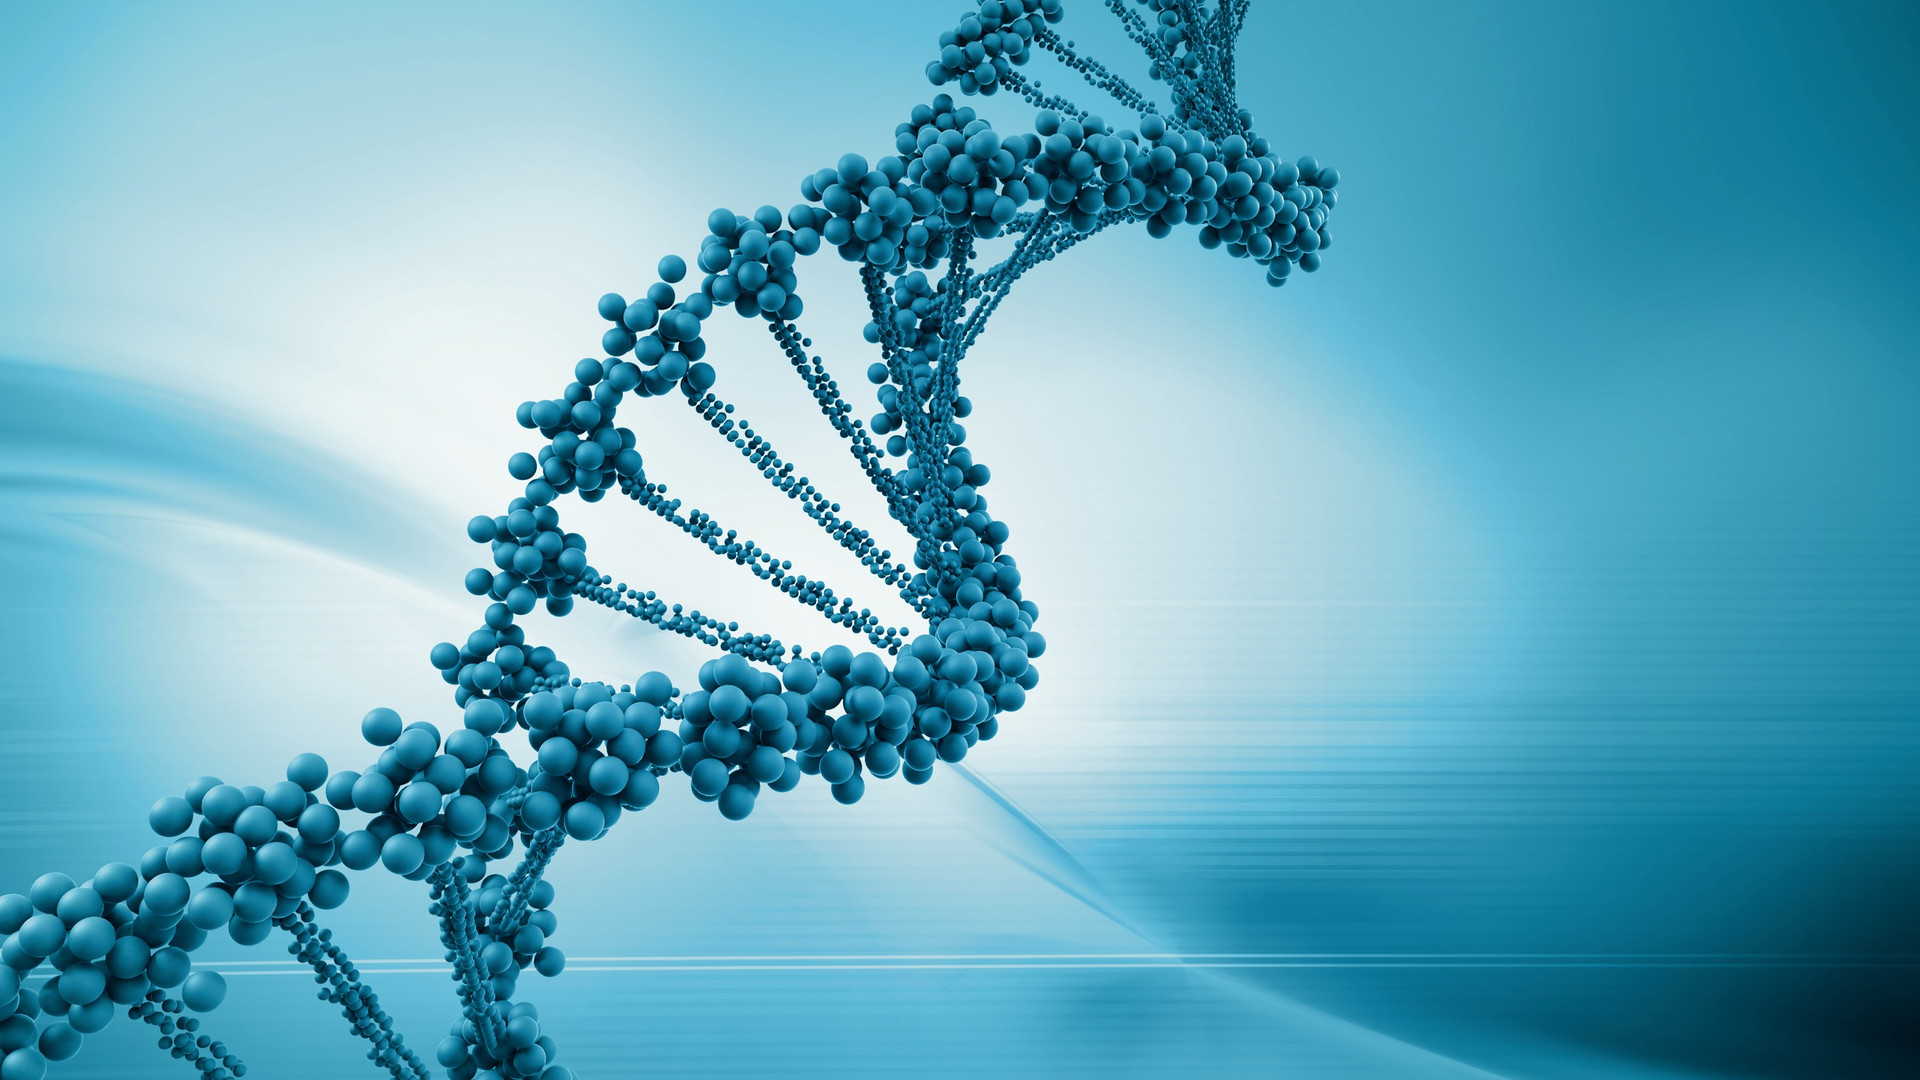 DNA-blue-dreamstime_edited.jpg